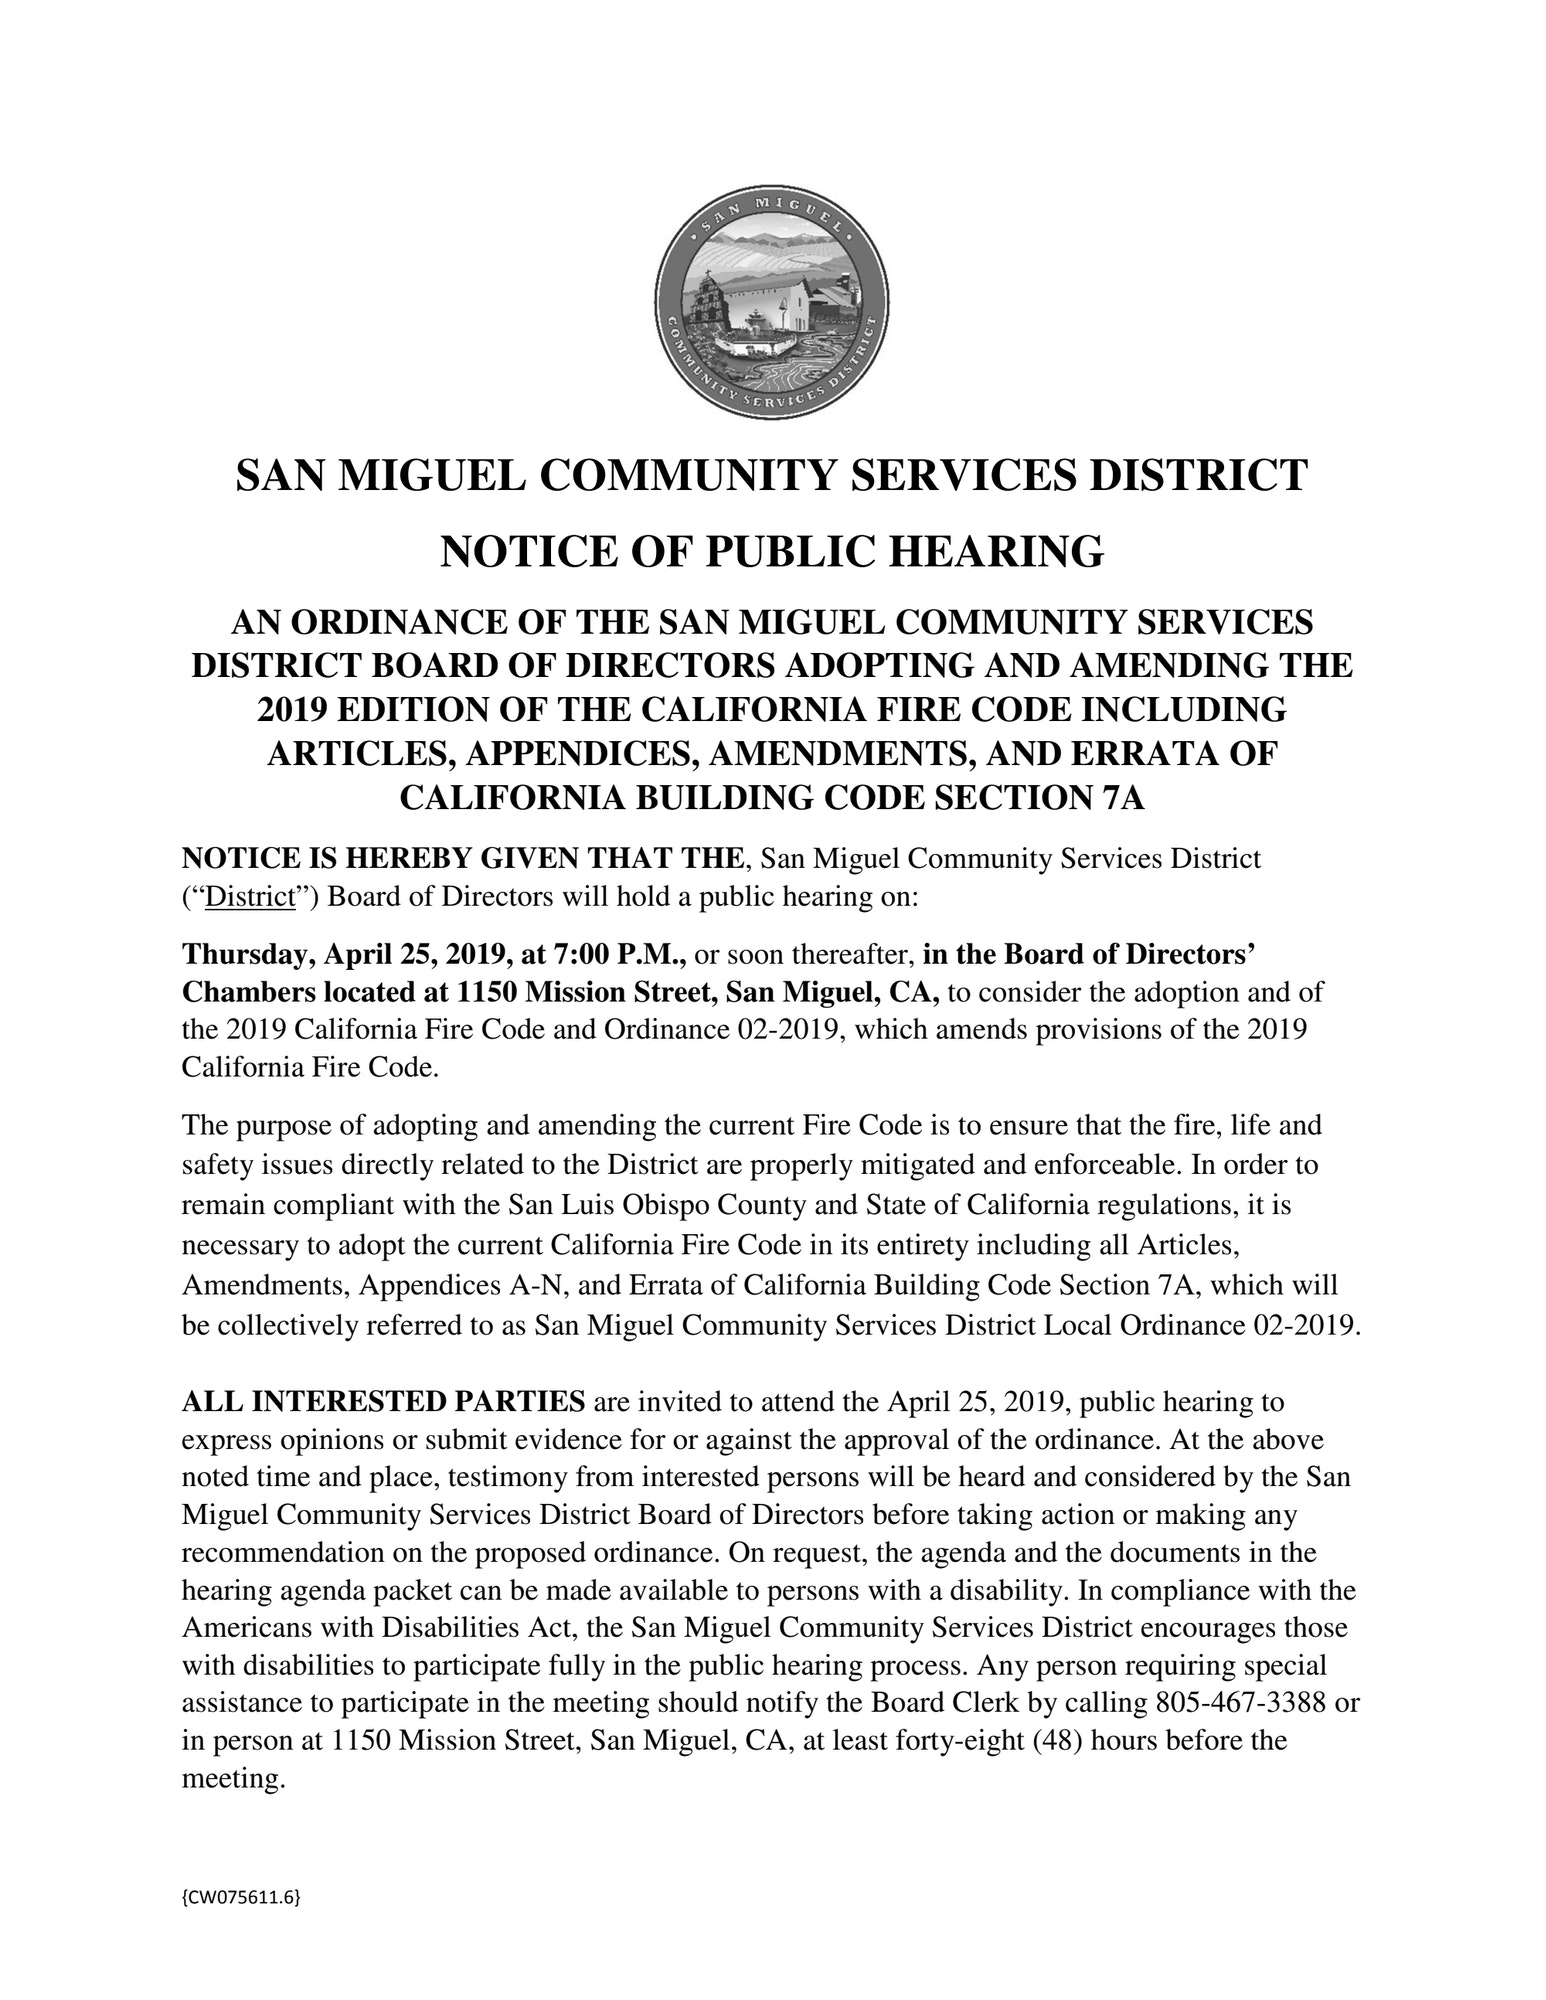 Public Hearing Notice for SMCSD Fire Code April 25 @7pm